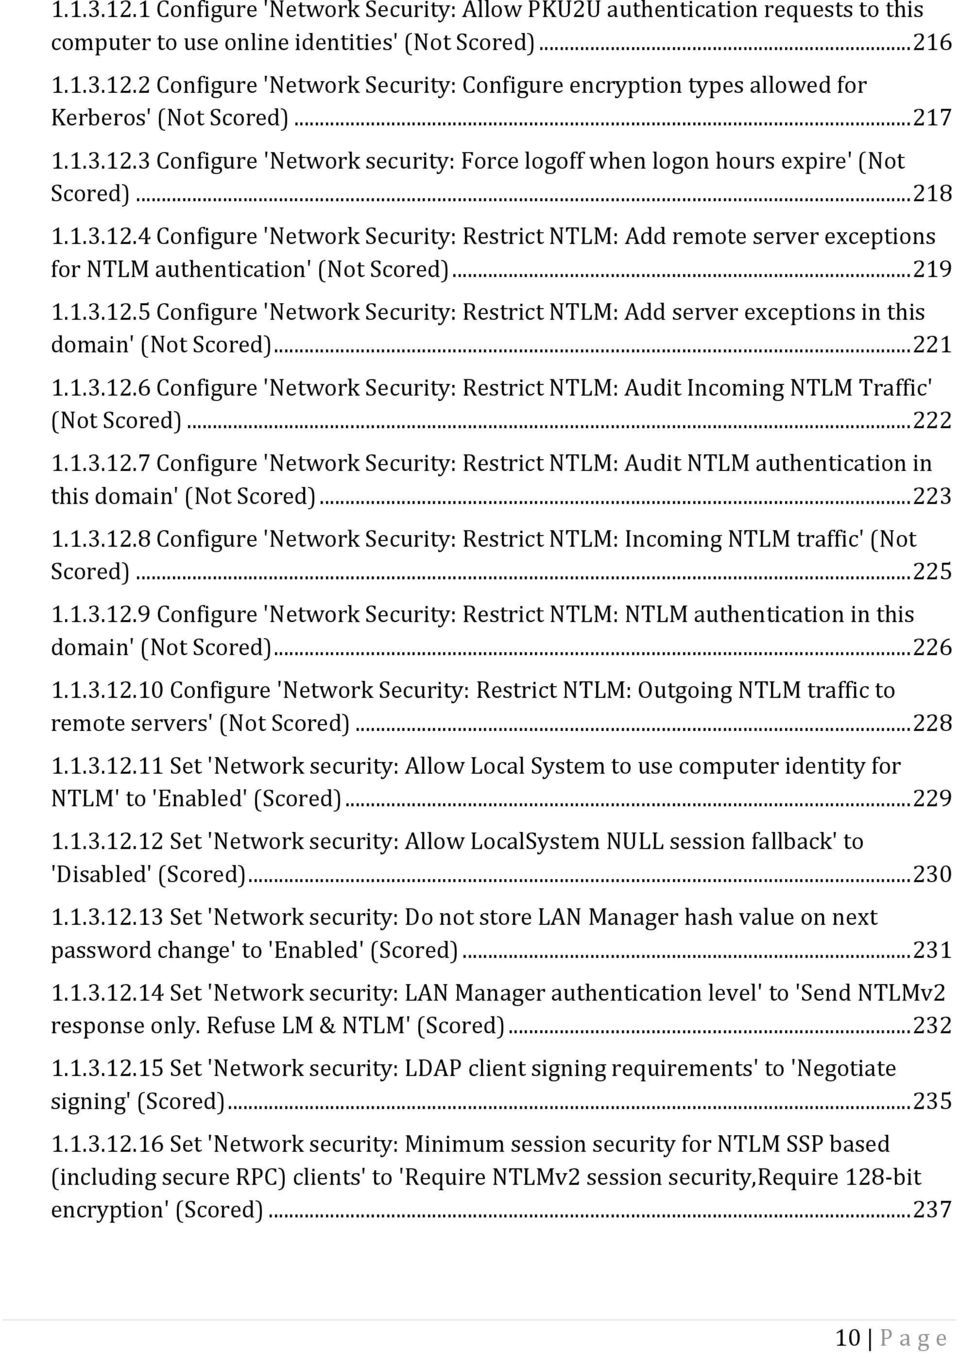 .. 219 1.1.3.12.5 Configure 'Network Security: Restrict NTLM: Add server exceptions in this domain' (Not Scored)... 221 1.1.3.12.6 Configure 'Network Security: Restrict NTLM: Audit Incoming NTLM Traffic' (Not Scored).